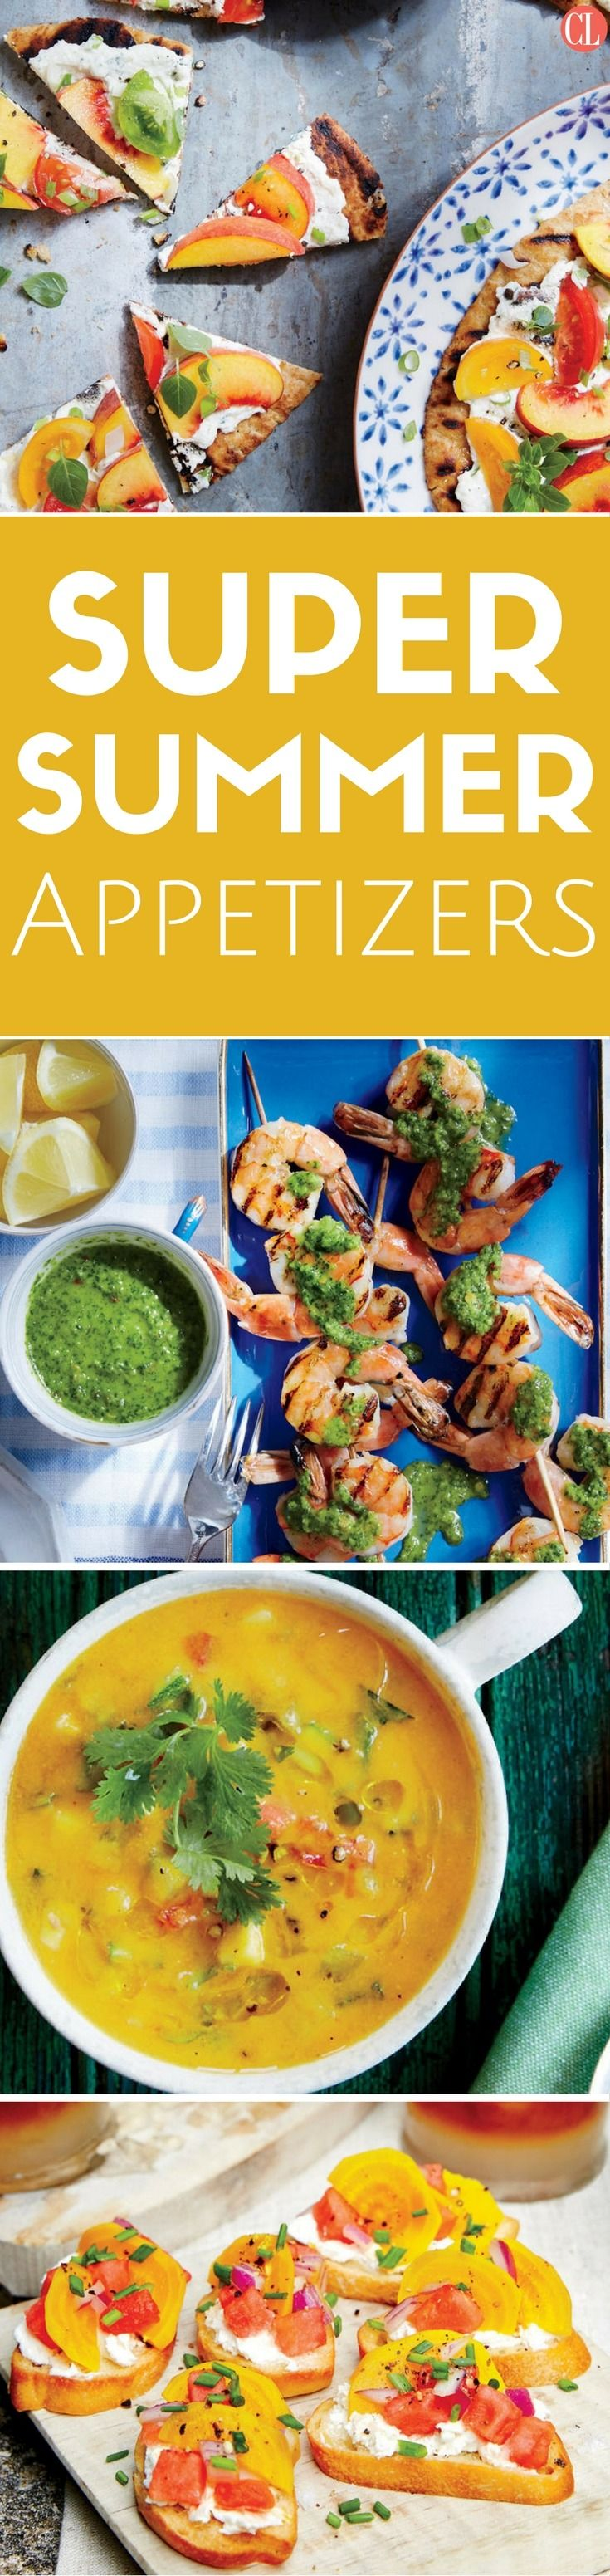 From jalapeño poppers and quesadillas to tasty dips and salsas, start your meal off right with summer appetizers featuring fresh, flavorful produce. | Cooking Light